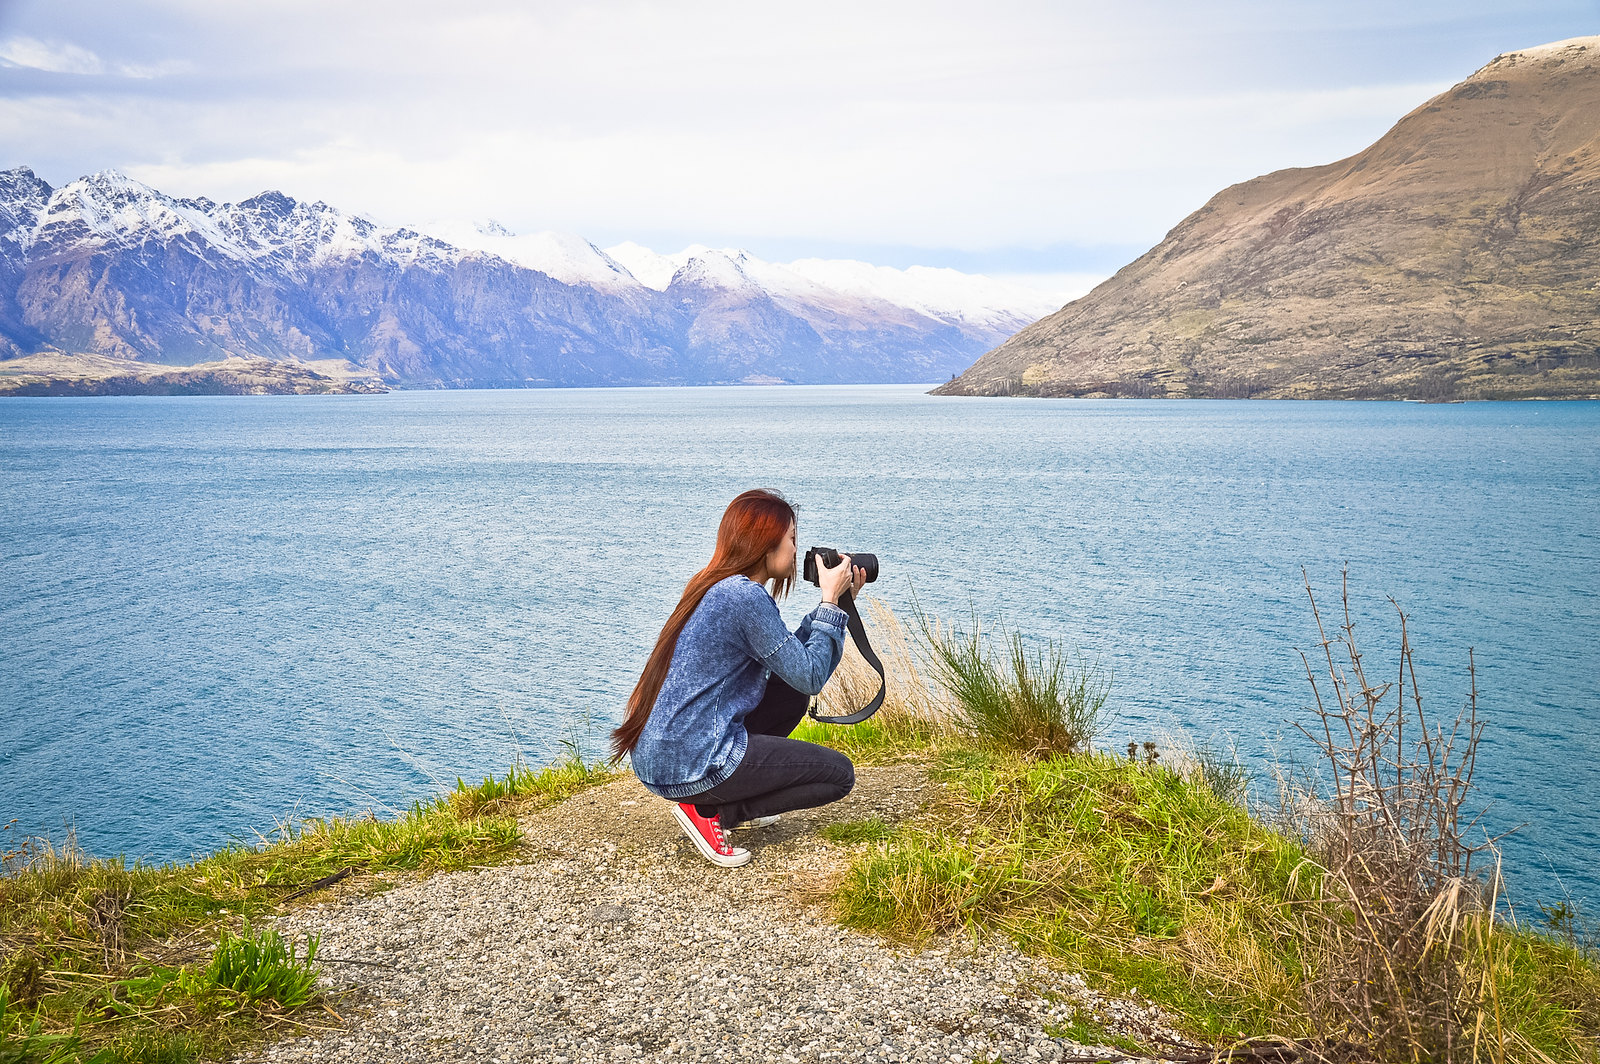 glenorchy girls Queenstown nz is the official site for queenstown accommodation, things to do in queenstown, activities, shopping, wine, events, conferences and more.